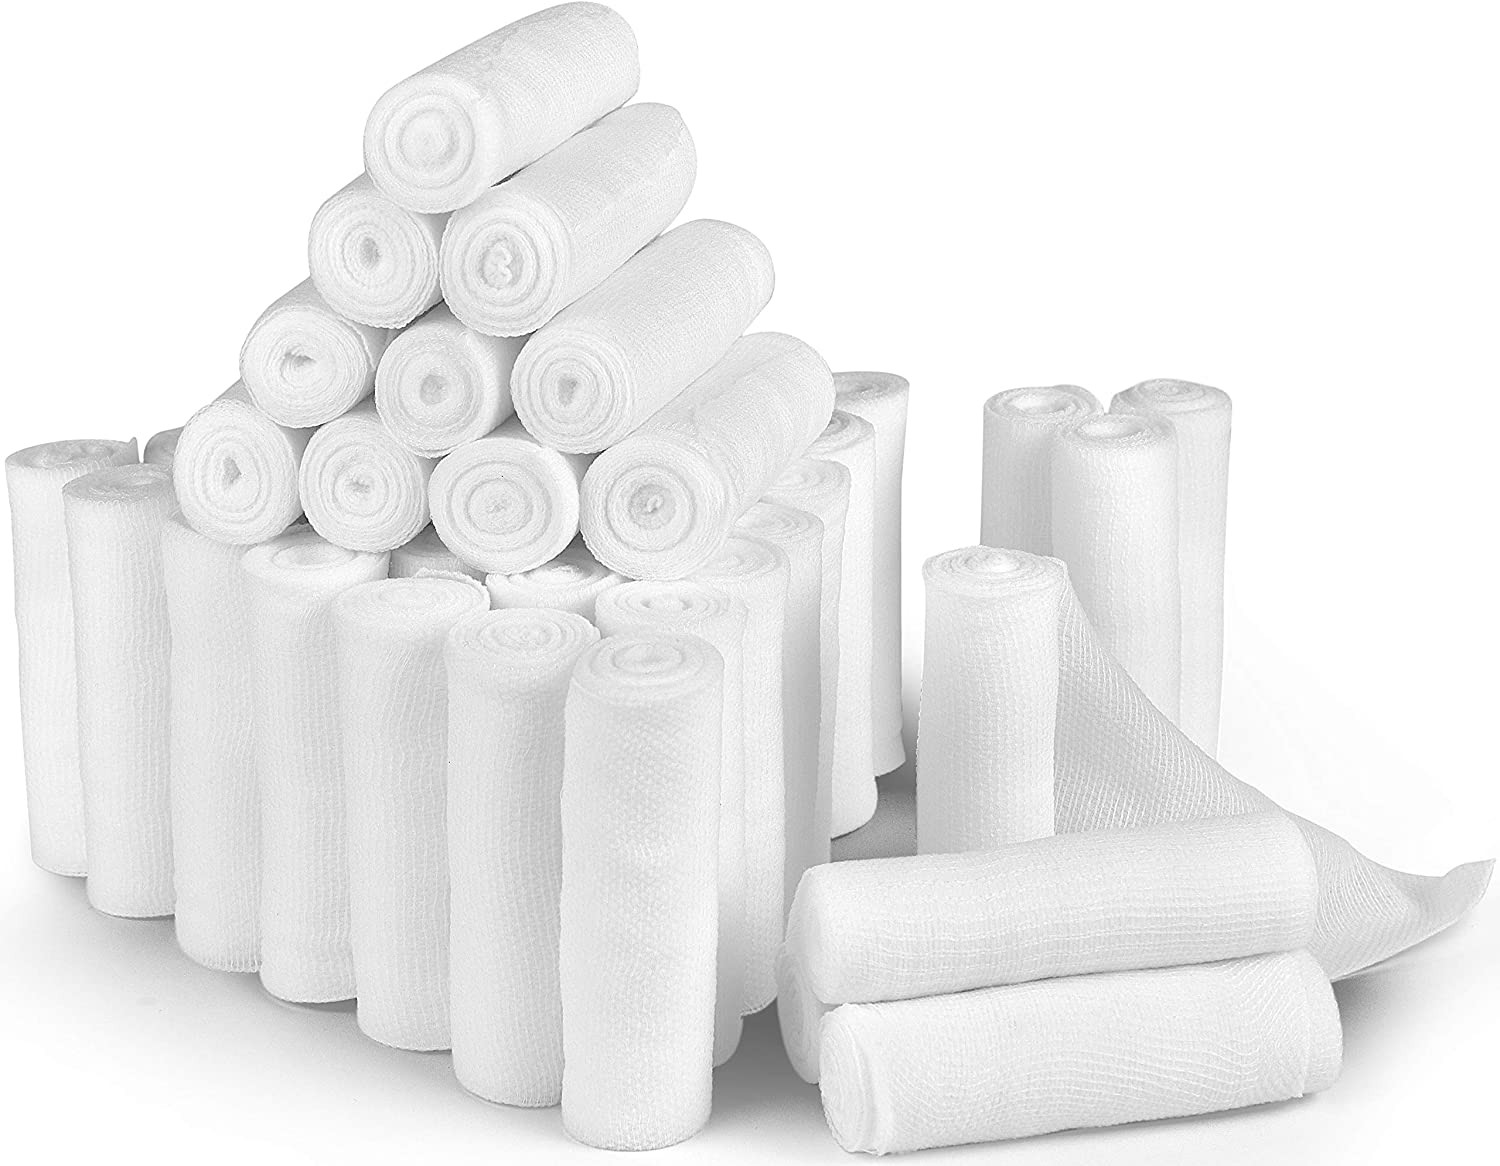 2 Inch X 4 Yards FDA Approved Add to First Aid Supplies D/&H Medical 24 Bulk Pack Gauze Stretch Bandage Roll Used for Wound Care Easy to Use Cotton Ply Rolled Hand Wrap Dressing Ankles /& Knees